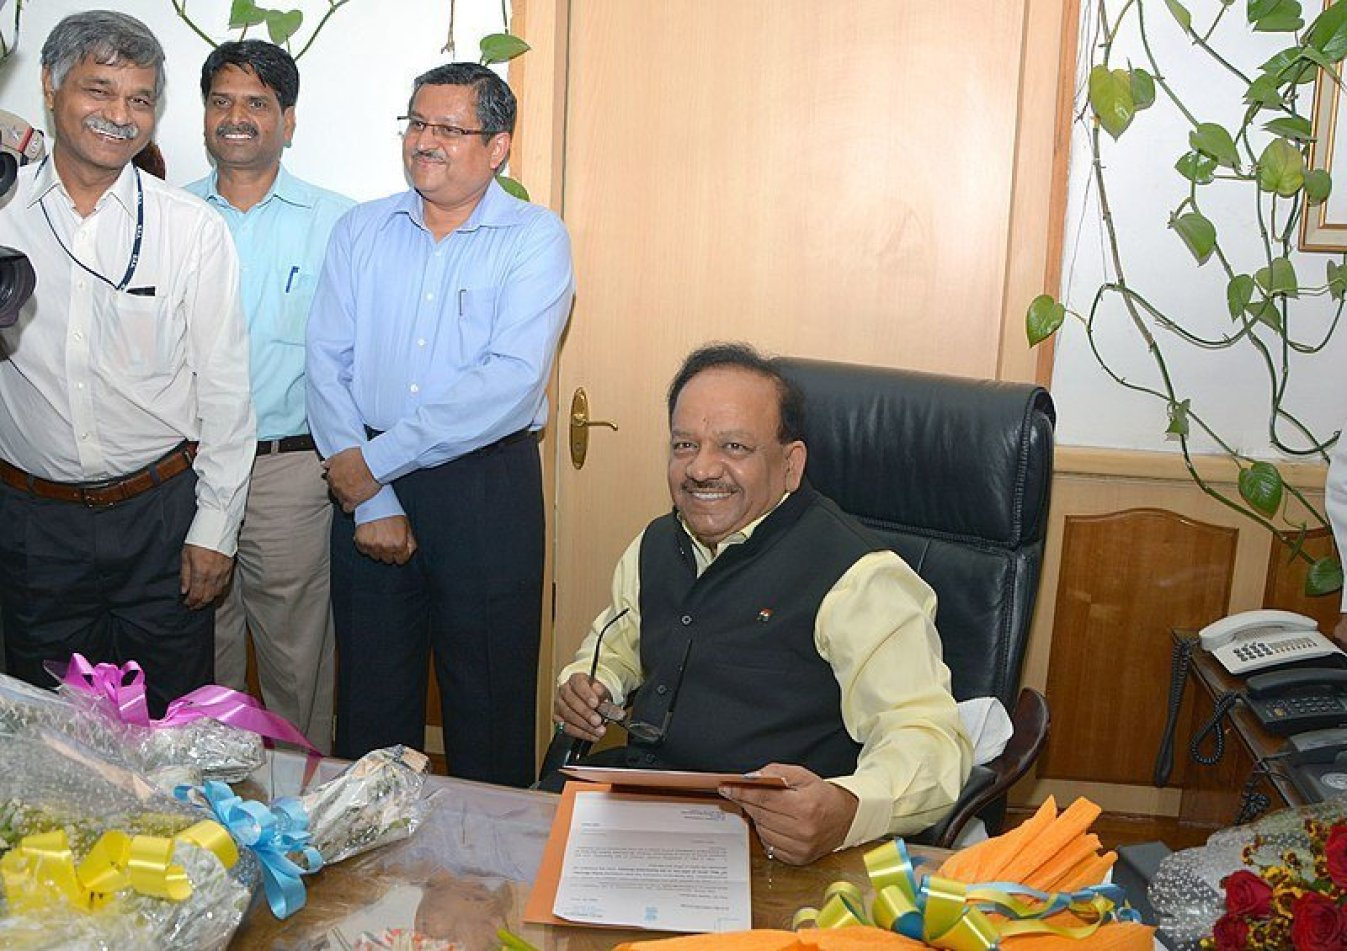 """<em><strong>Union Health Minister Dr Vardhan, who has told Lok Sabha MPs that more than ten crore families are covered under Ayushman Bharat. Image credit: Ministry of Health and Family Welfare (GODL-India) [GODL-India (https://data.gov.in/sites/default/files/Gazette_Notification_OGDL.pdf)] This file or its source was published by Press Information Bureau on behalf of Ministry of Health and Family Welfare, Government of India under the ID <a class=""""external text ext-link"""" href=""""http://pib.nic.in/newsite/photo.aspx?photoid=54064"""" rel=""""nofollow external nofollow"""">54064</a>and CNR 56840.<small>(<a class=""""external text ext-image"""" href=""""http://pibphoto.nic.in/photo//2014/May/l2014052754064.jpg"""" rel=""""nofollow external nofollow"""">directlink</a>)</small></strong></em>"""